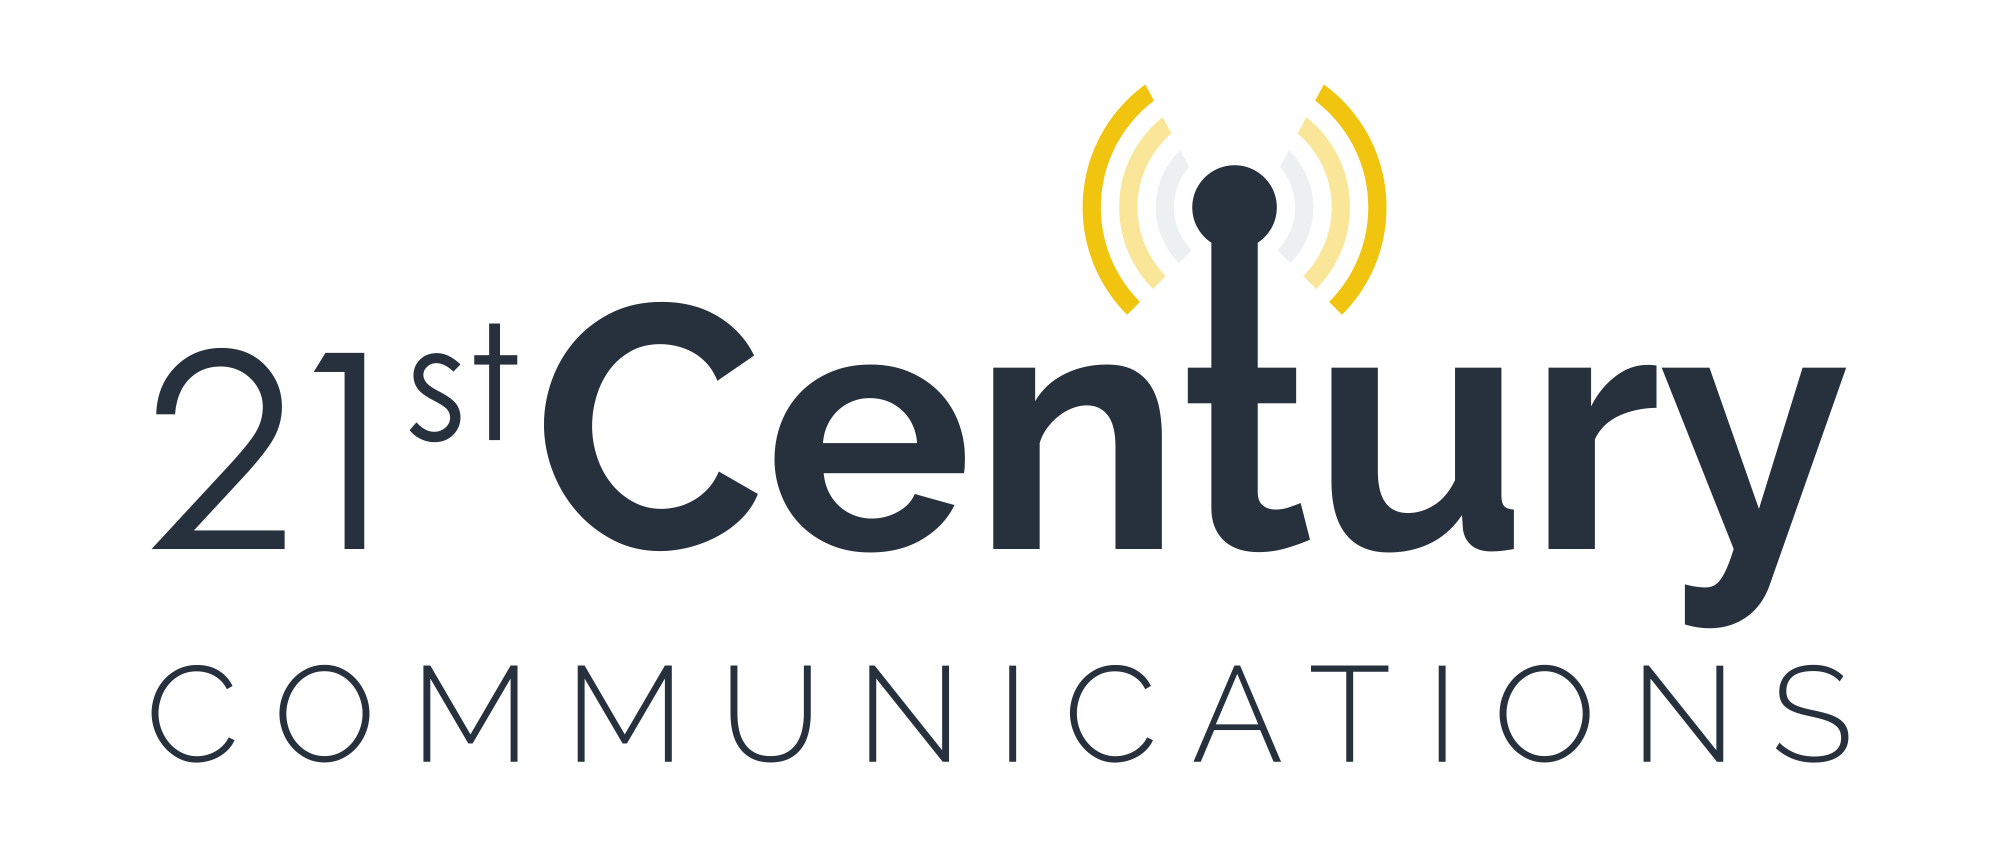 21st Century Communications Shares the Qualities of a Good Internet Service Provider